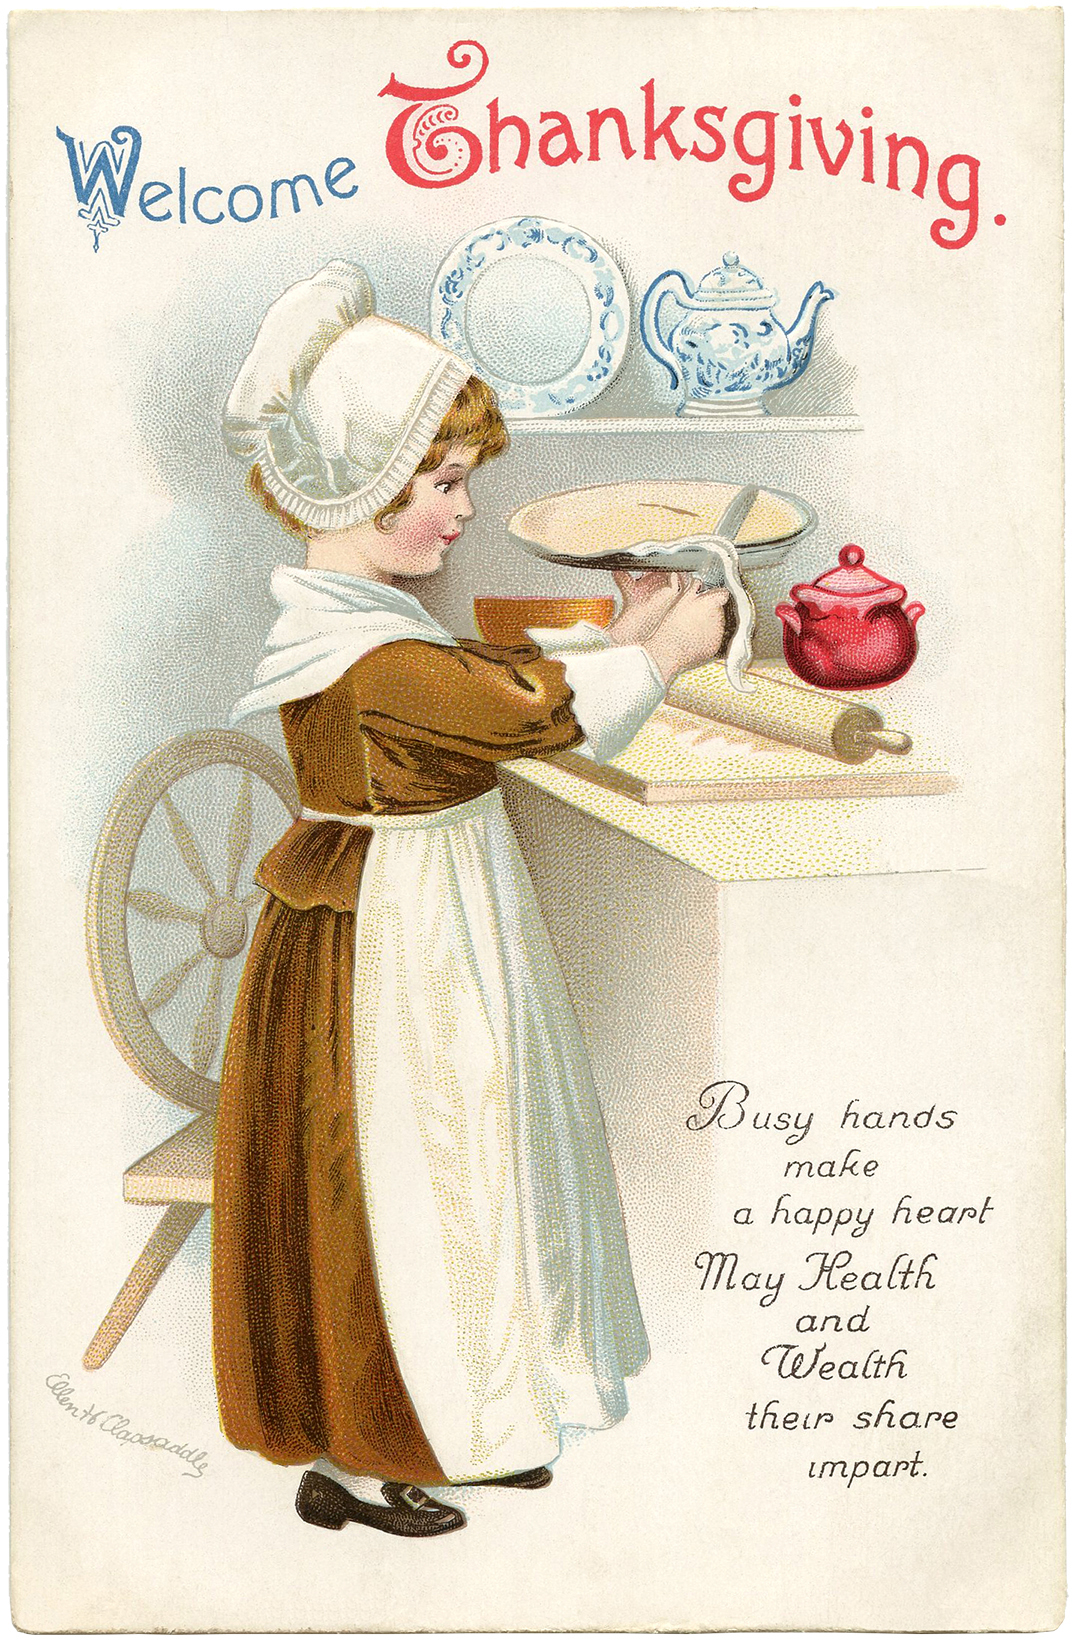 Free Vintage Thanksgiving Clip Art - The Graphics Fairy (1074 x 1643 Pixel)